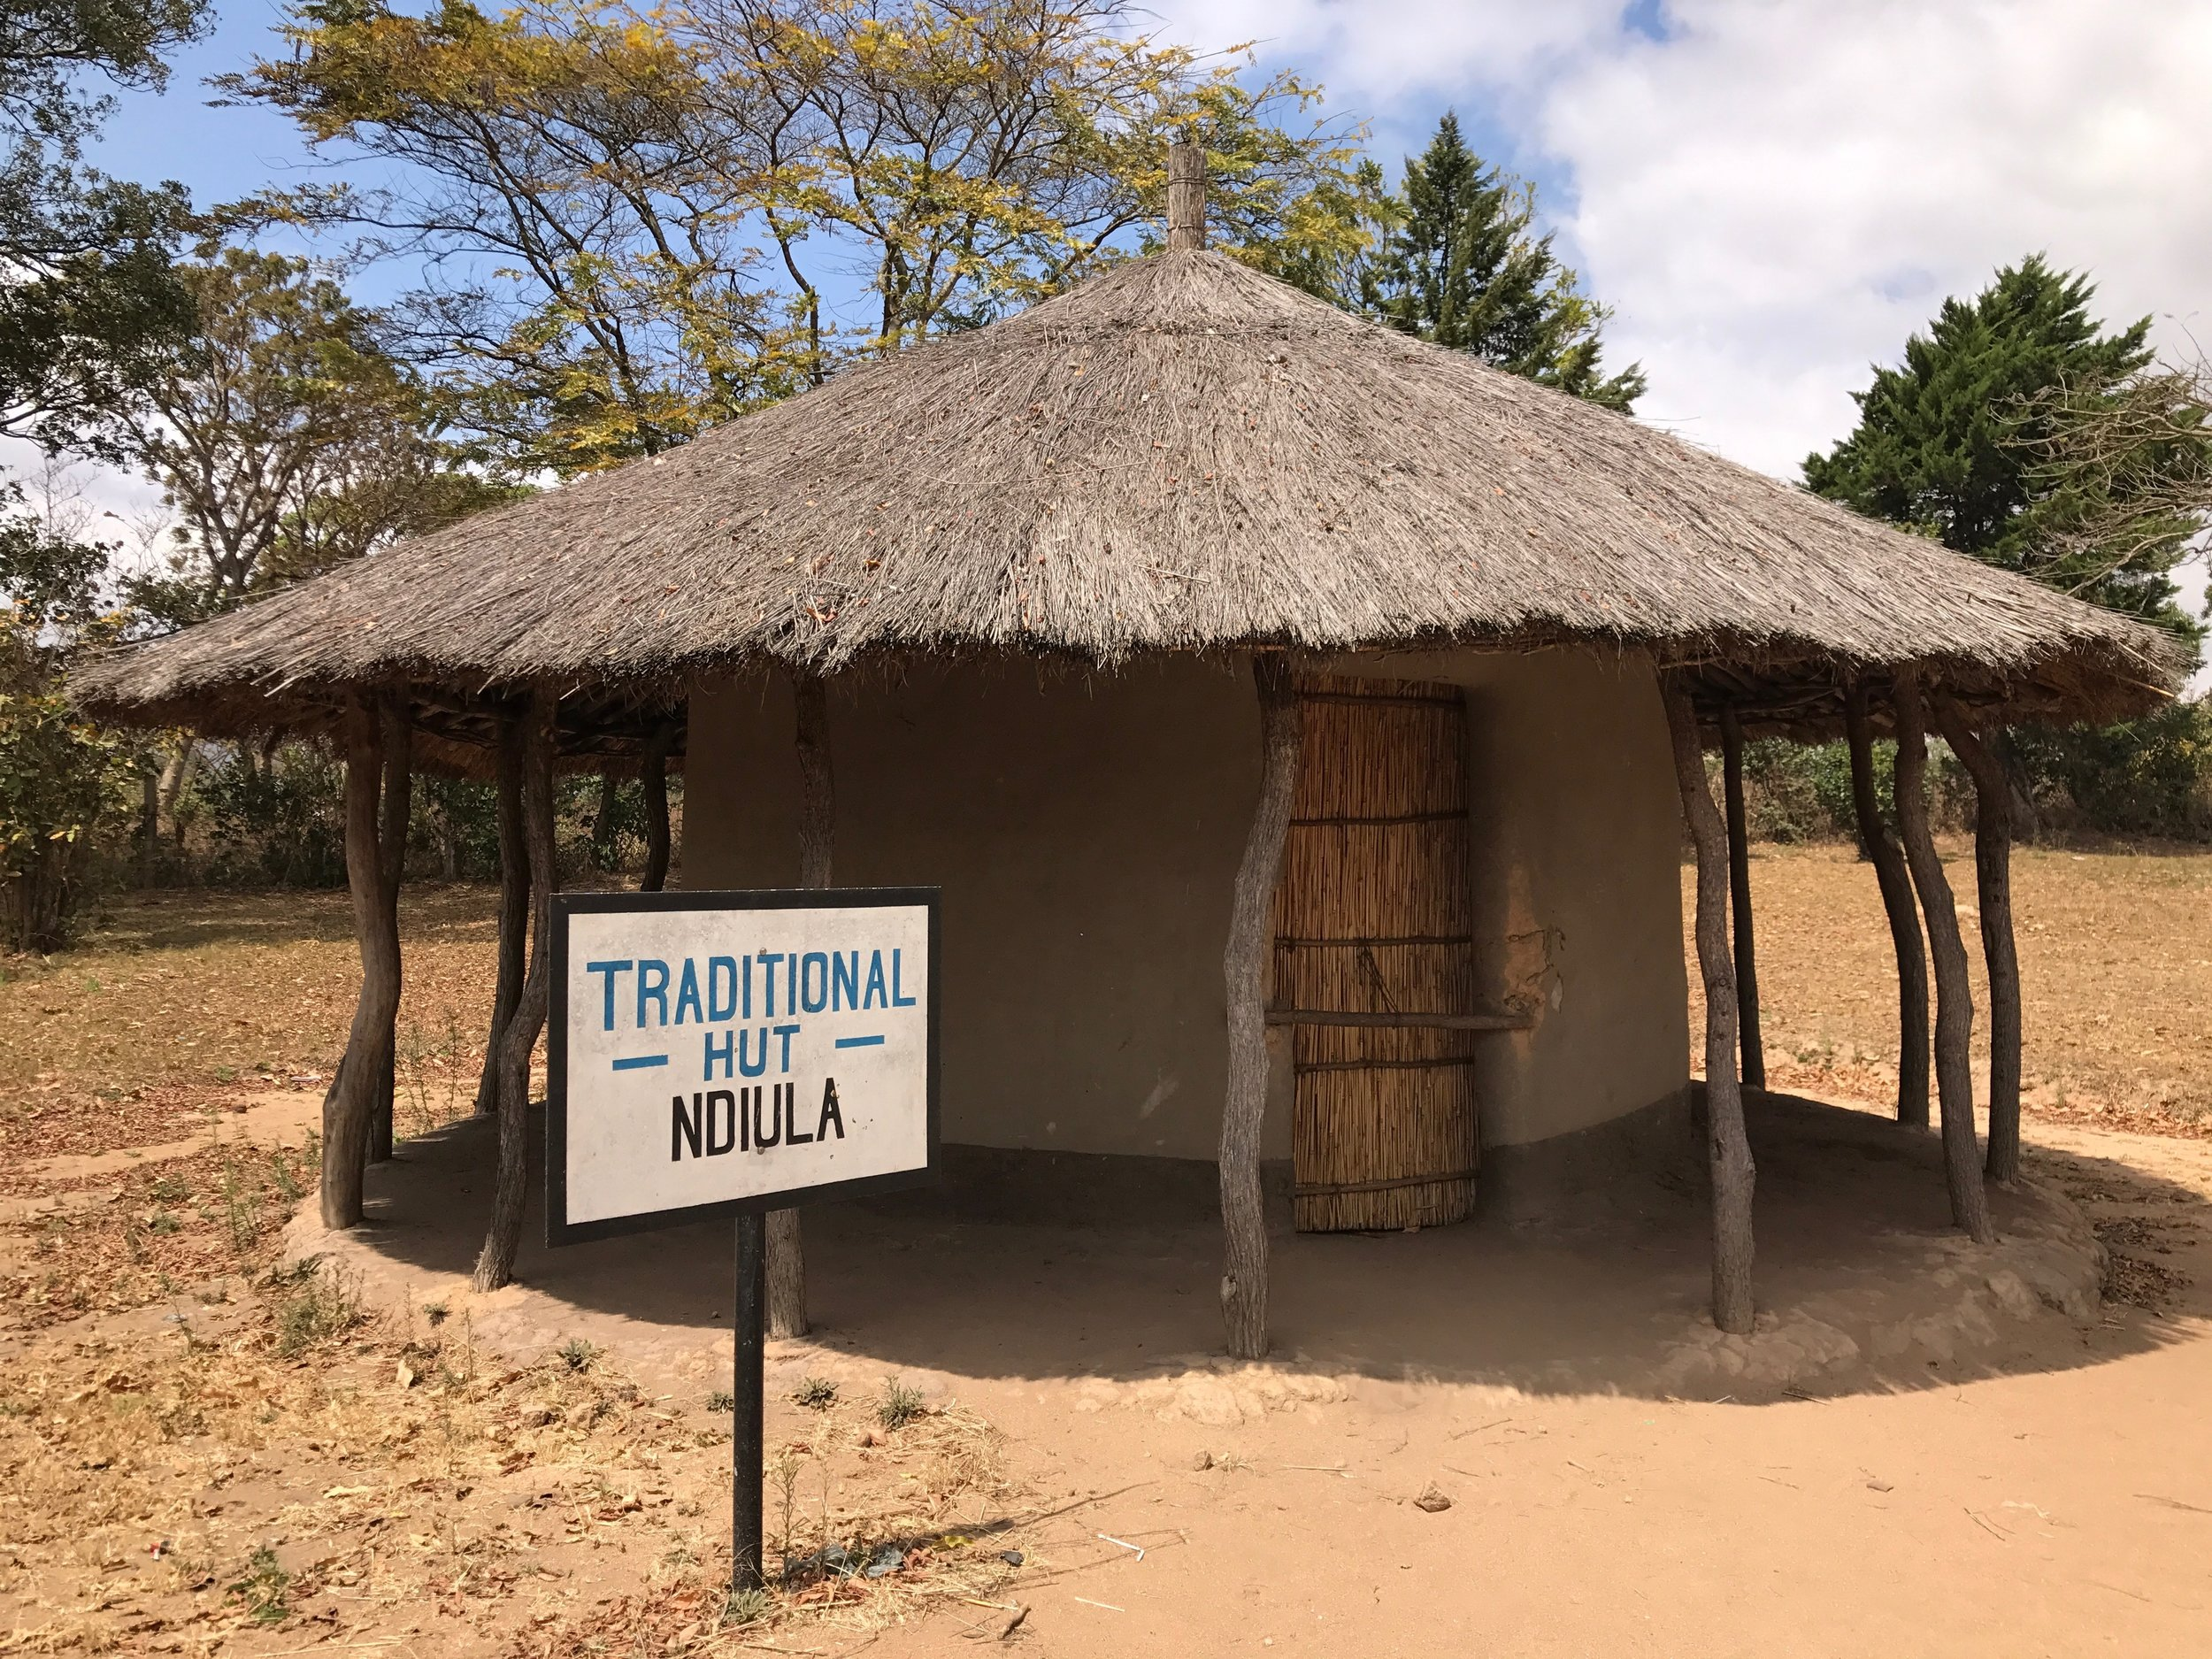 The traditional hut, fully furnished inside, used for education demonstrations